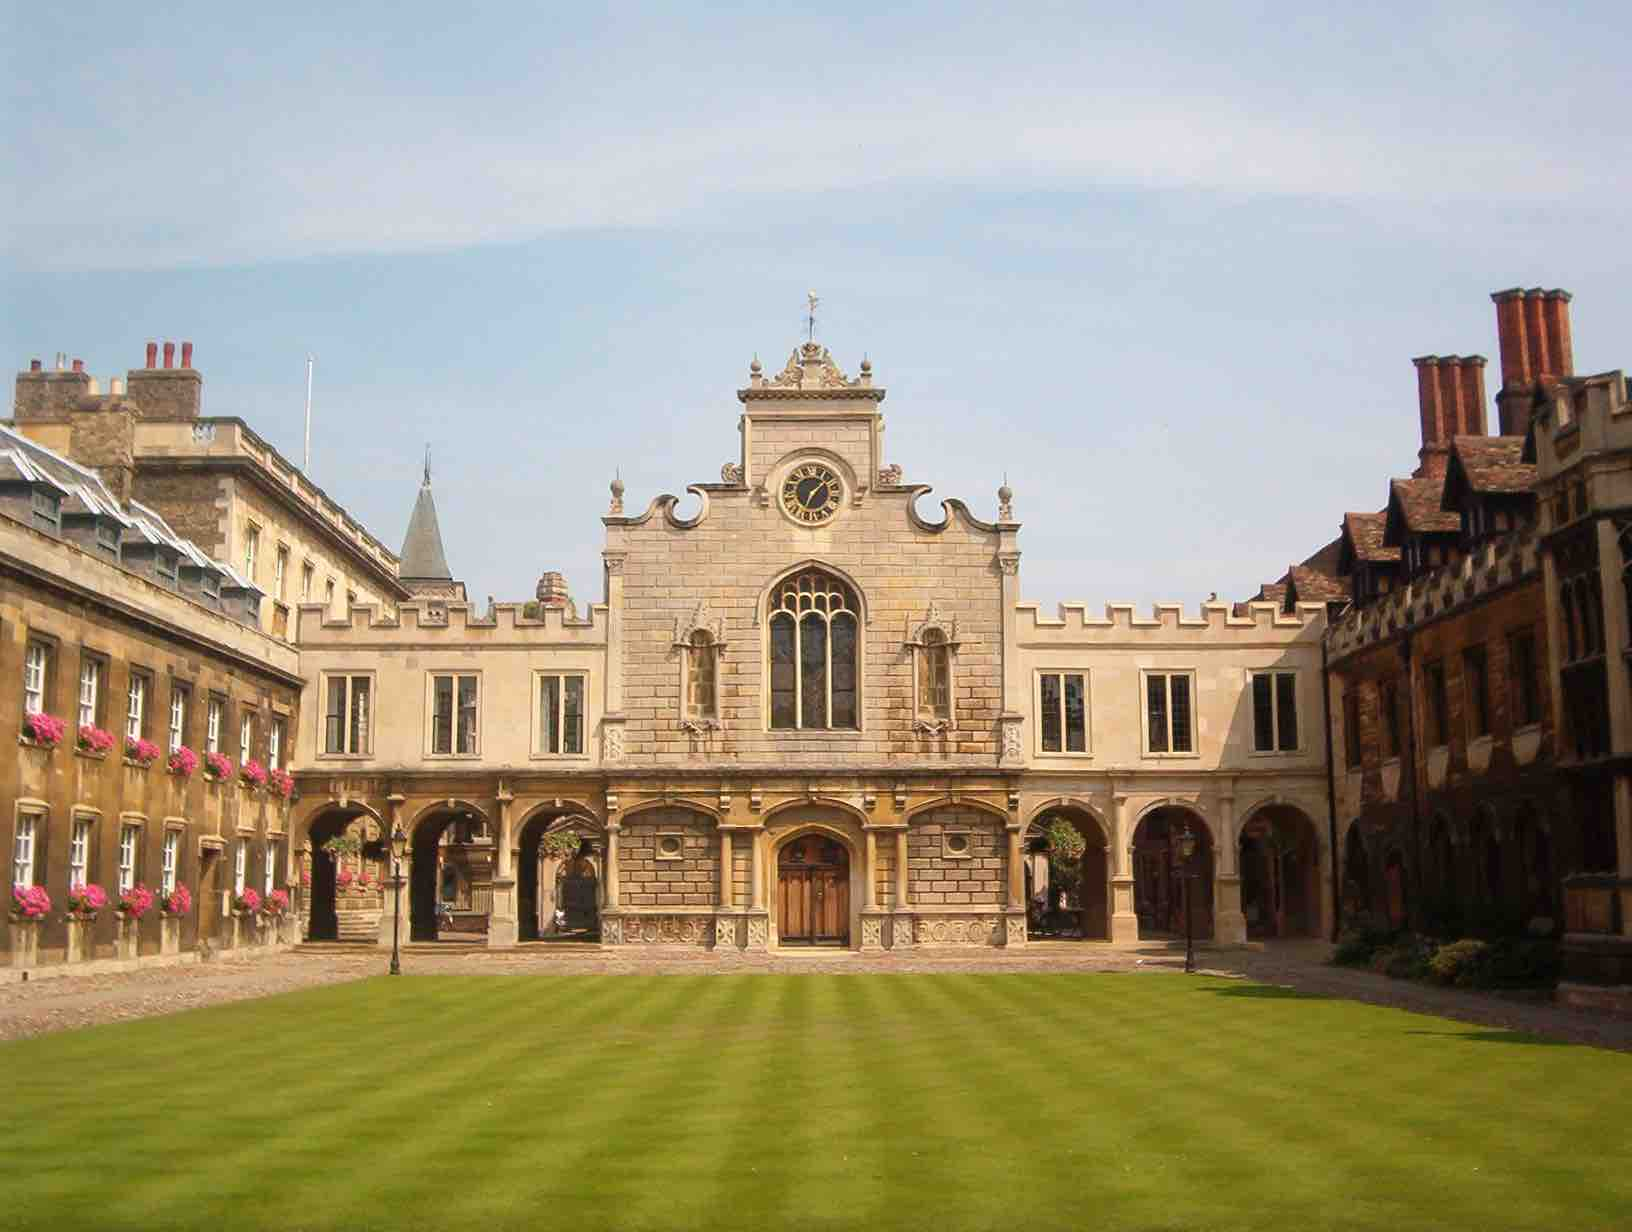 Dr Spencer co-organised the 2014 Medico-Legal Pain Conference, held on 26 September 2014 at Peterhouse College, Cambridge